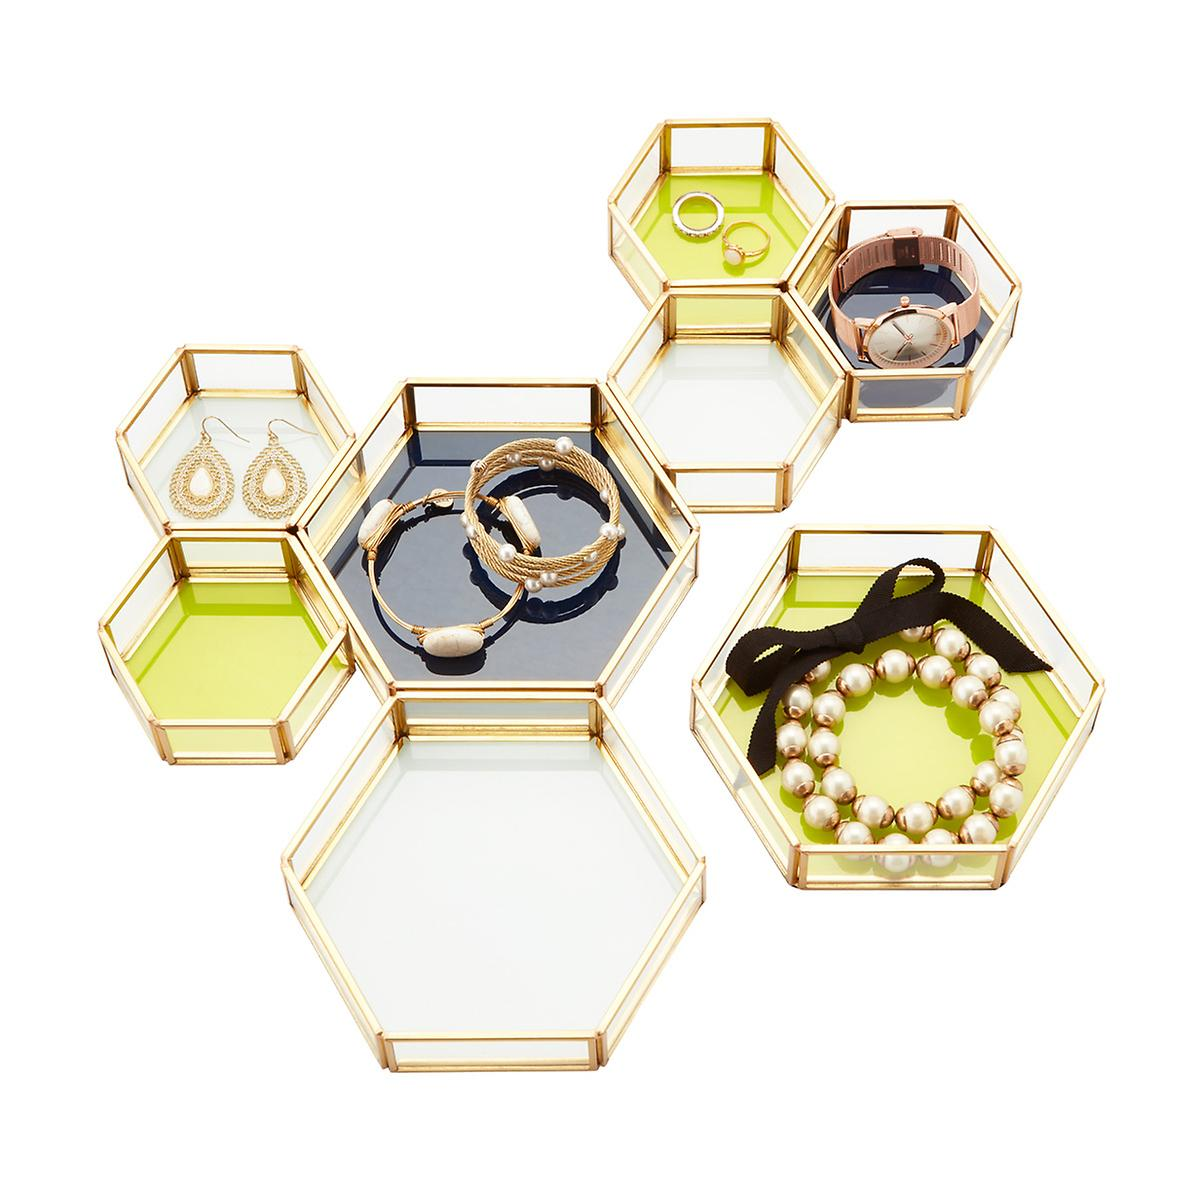 Three By Three Beehive Glass Amp Metal Jewelry Trays The